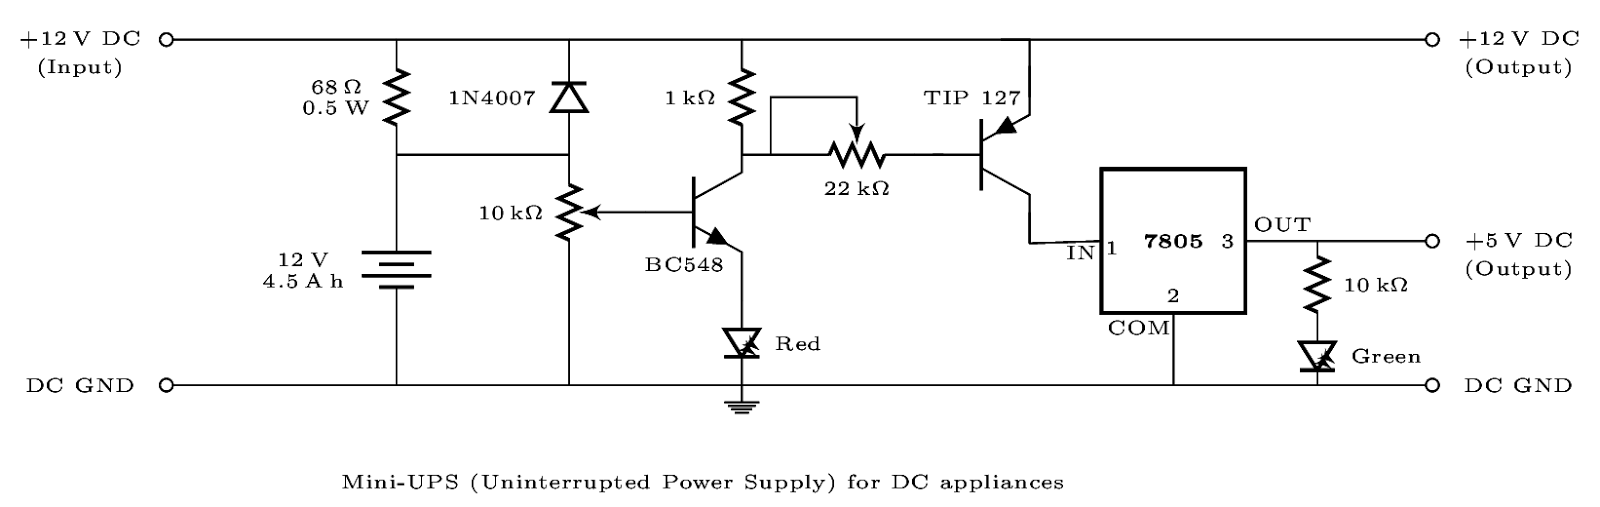 small resolution of technical musings diy mini ups for charging phones or running wifi the circuit diagram was